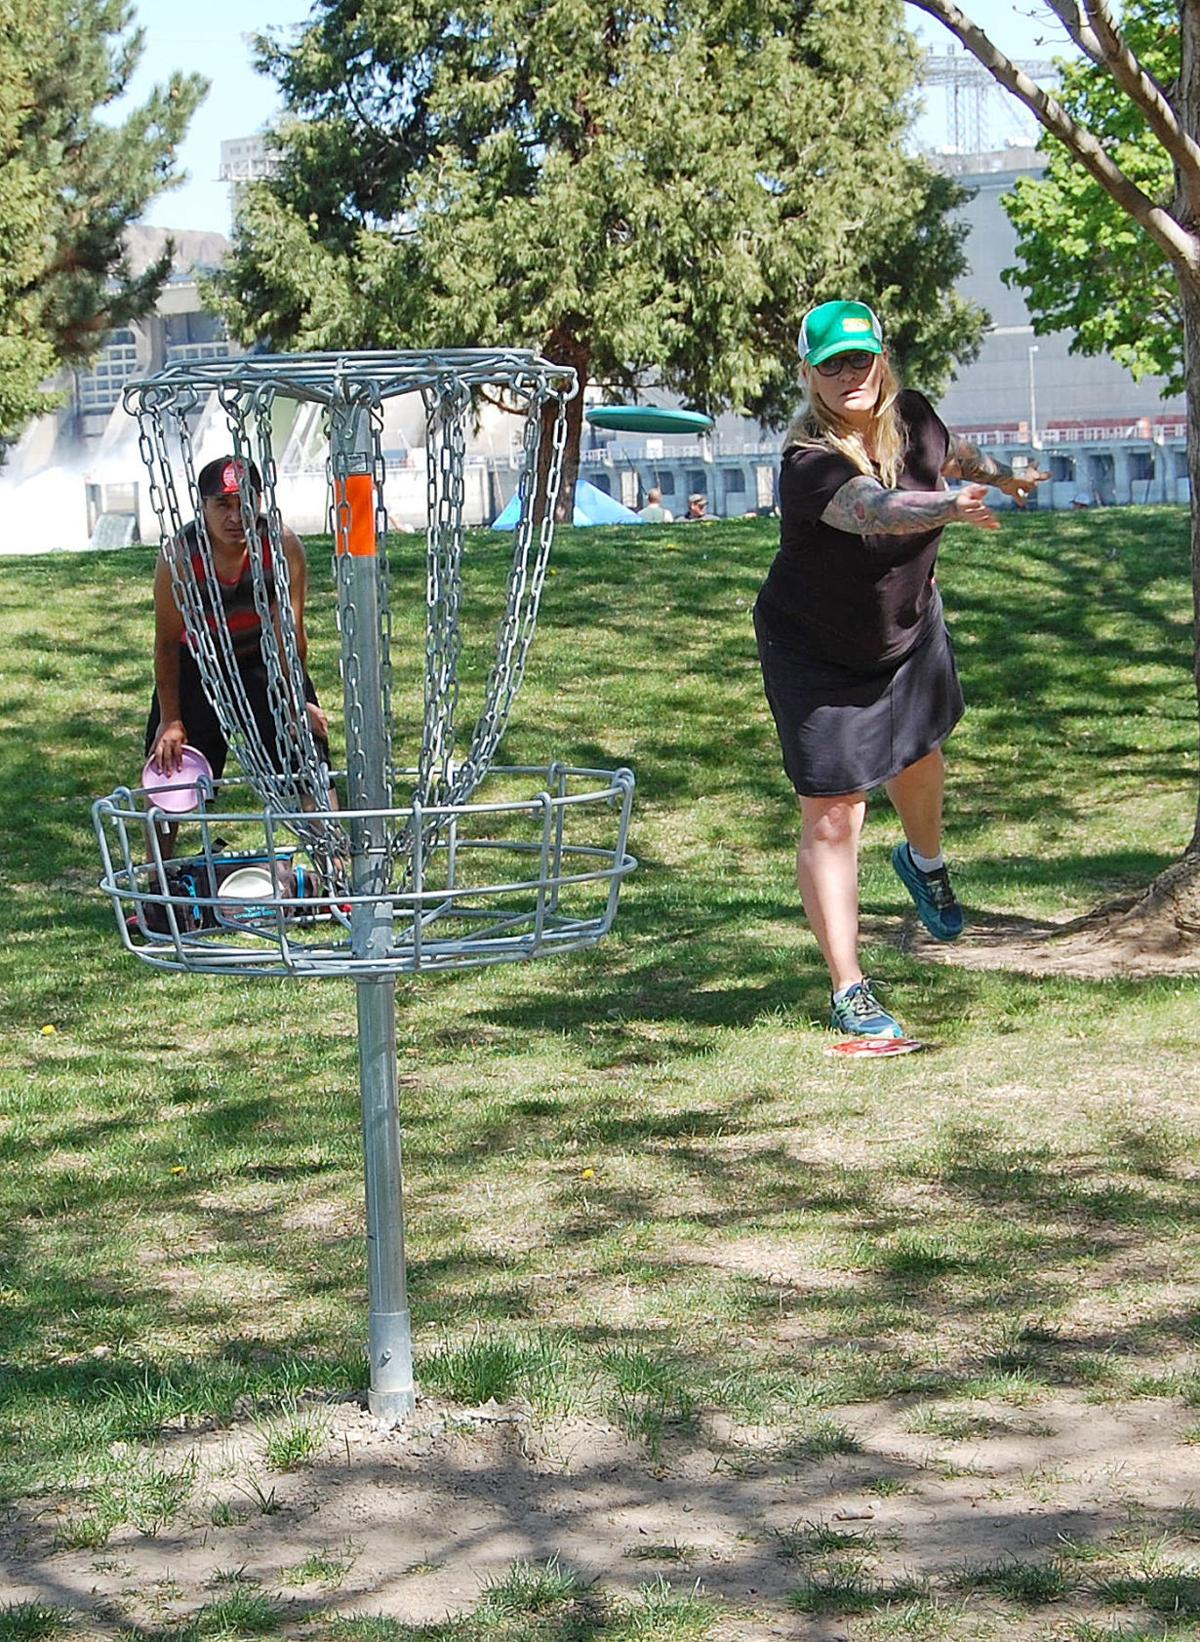 Disc golfers to rattle chains at Desert Disc Golf